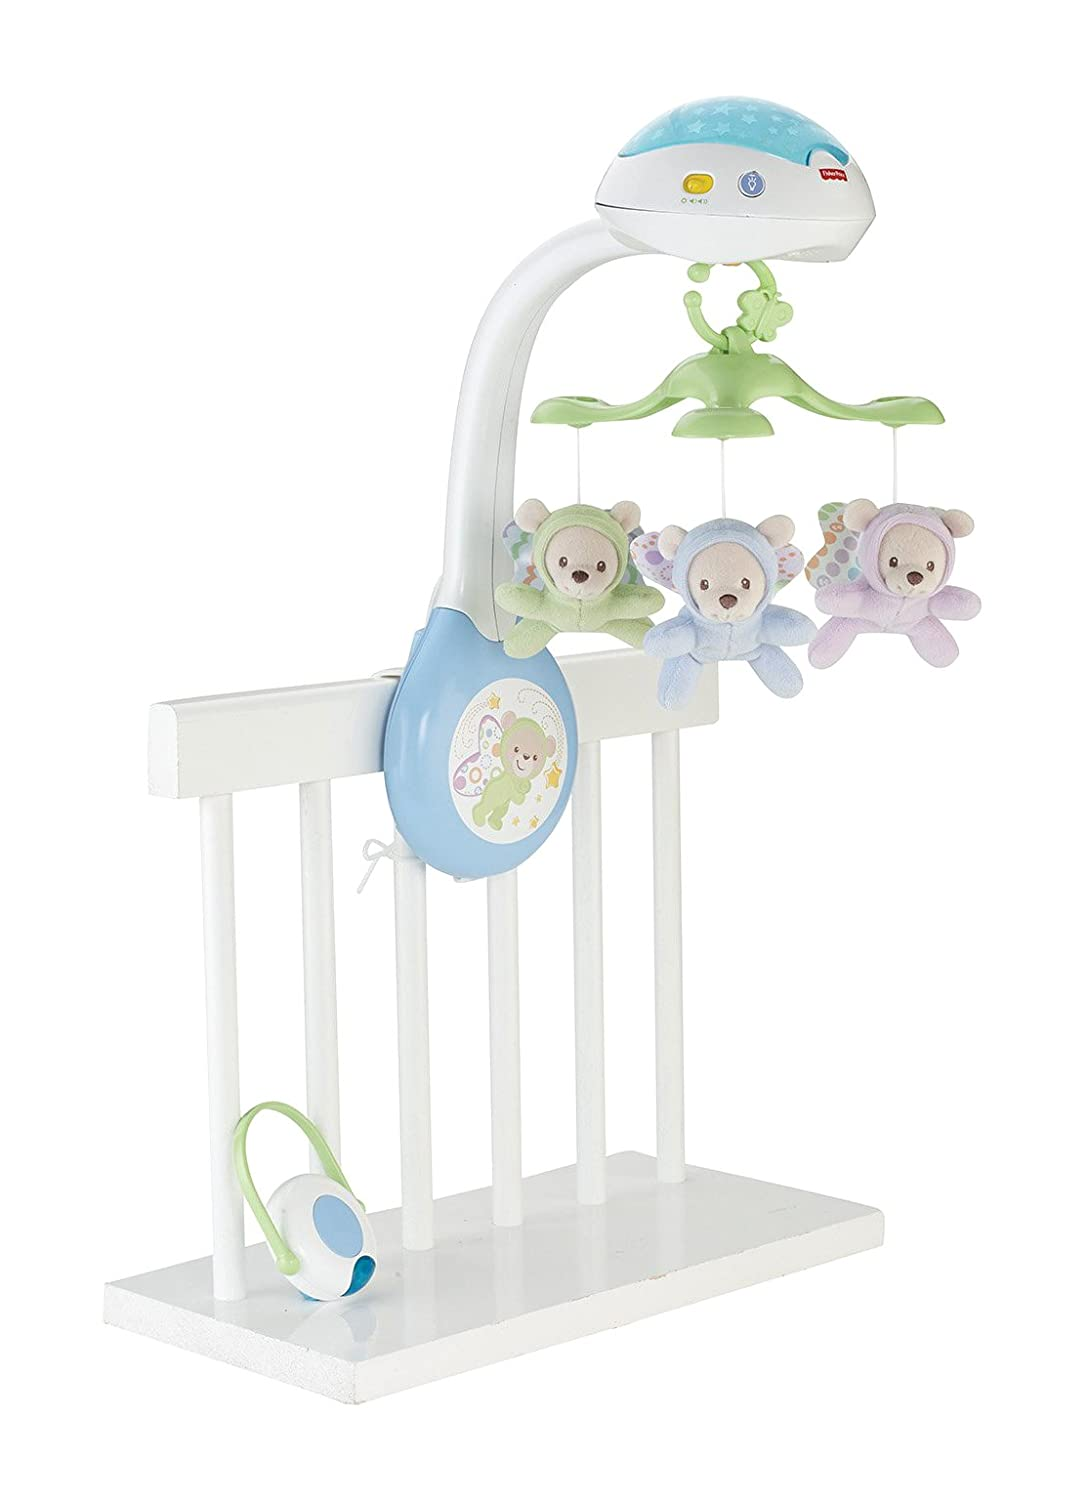 fisher price mobile butterfly projection baby boy girl toy crib cot music gift ebay. Black Bedroom Furniture Sets. Home Design Ideas